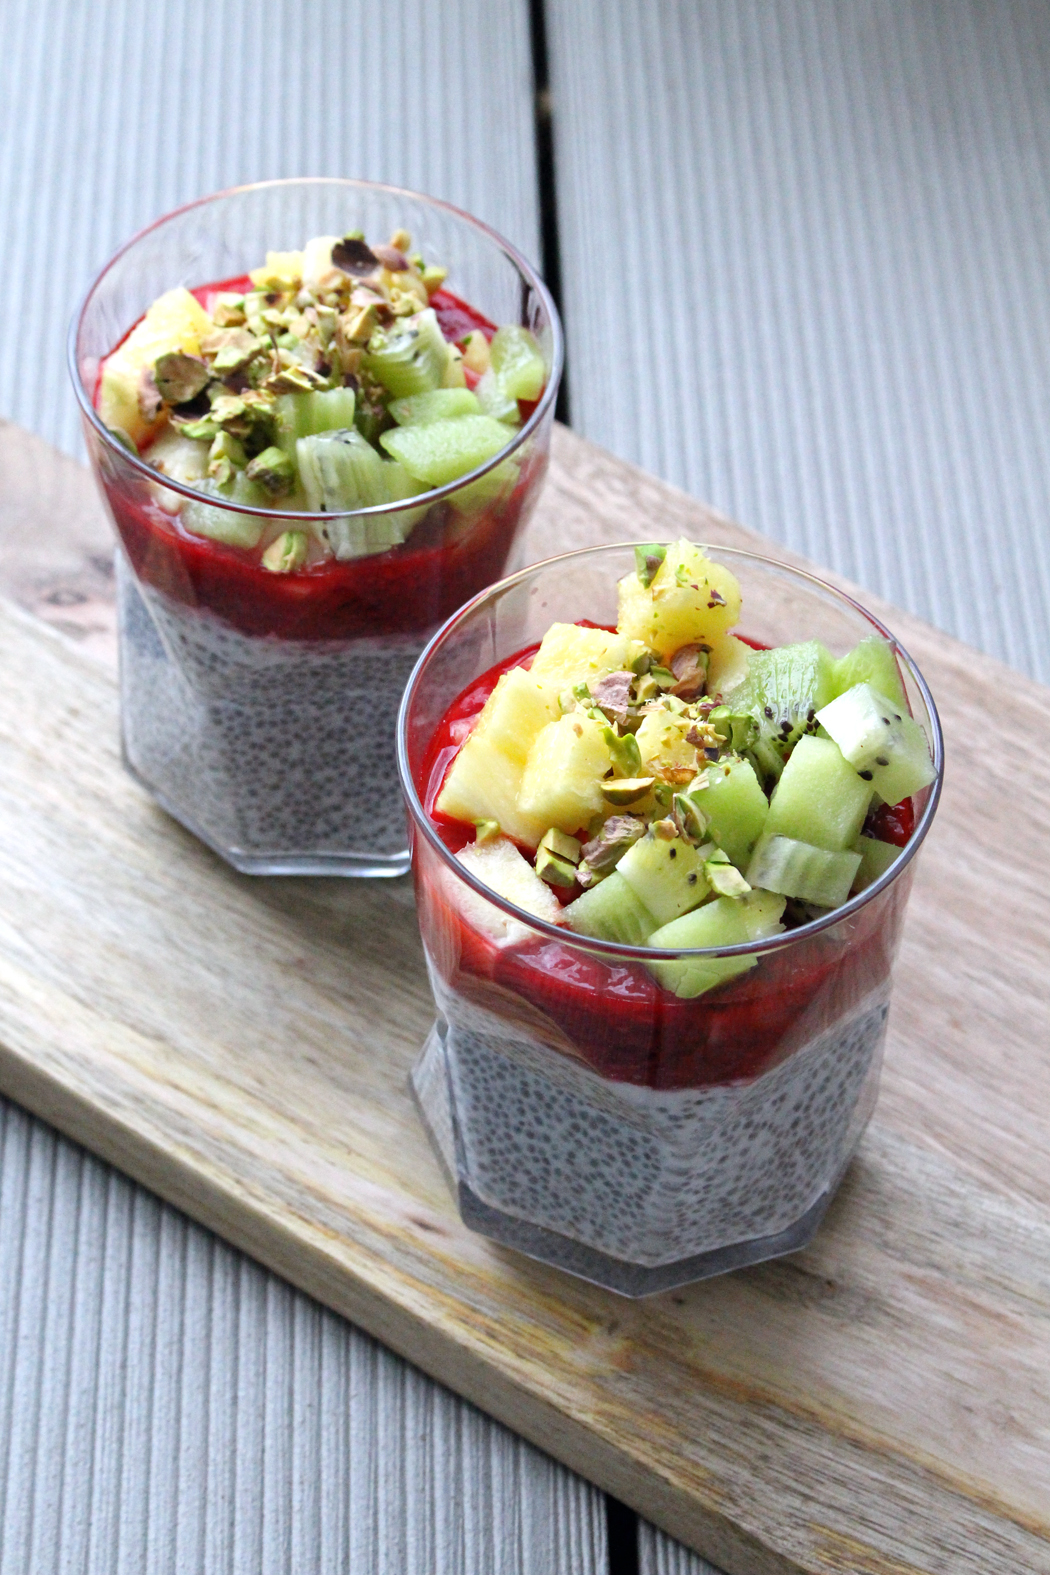 Chia-Pudding mit Himbeersauce3